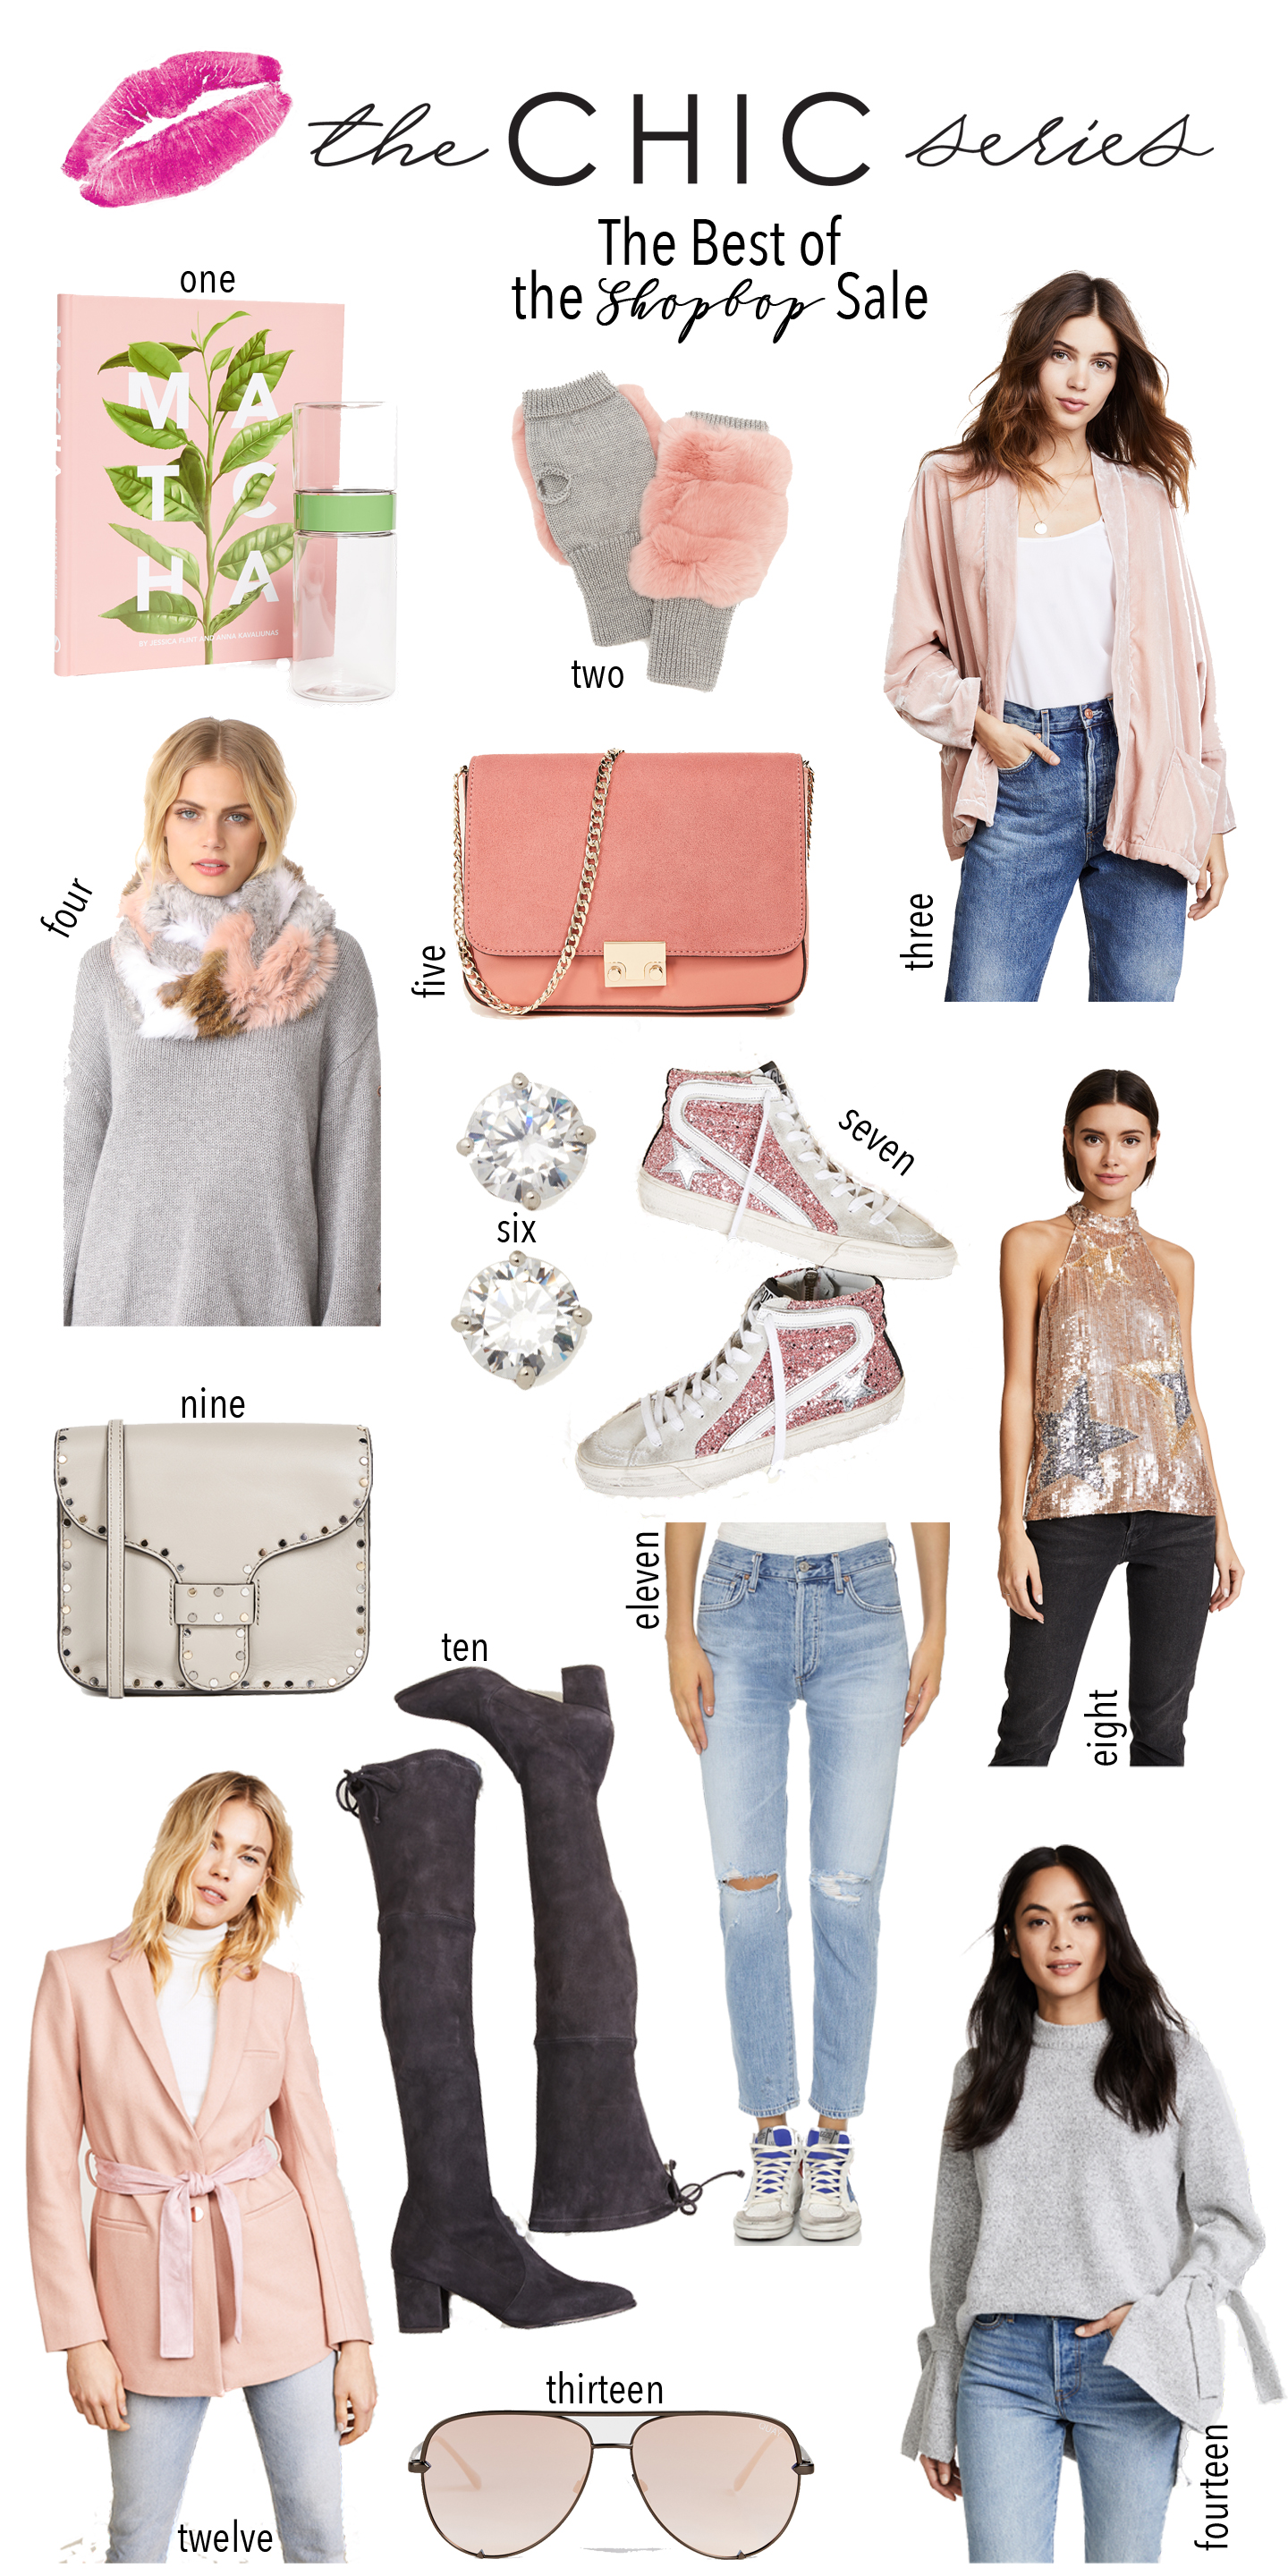 Shop The Shopbop Sale!